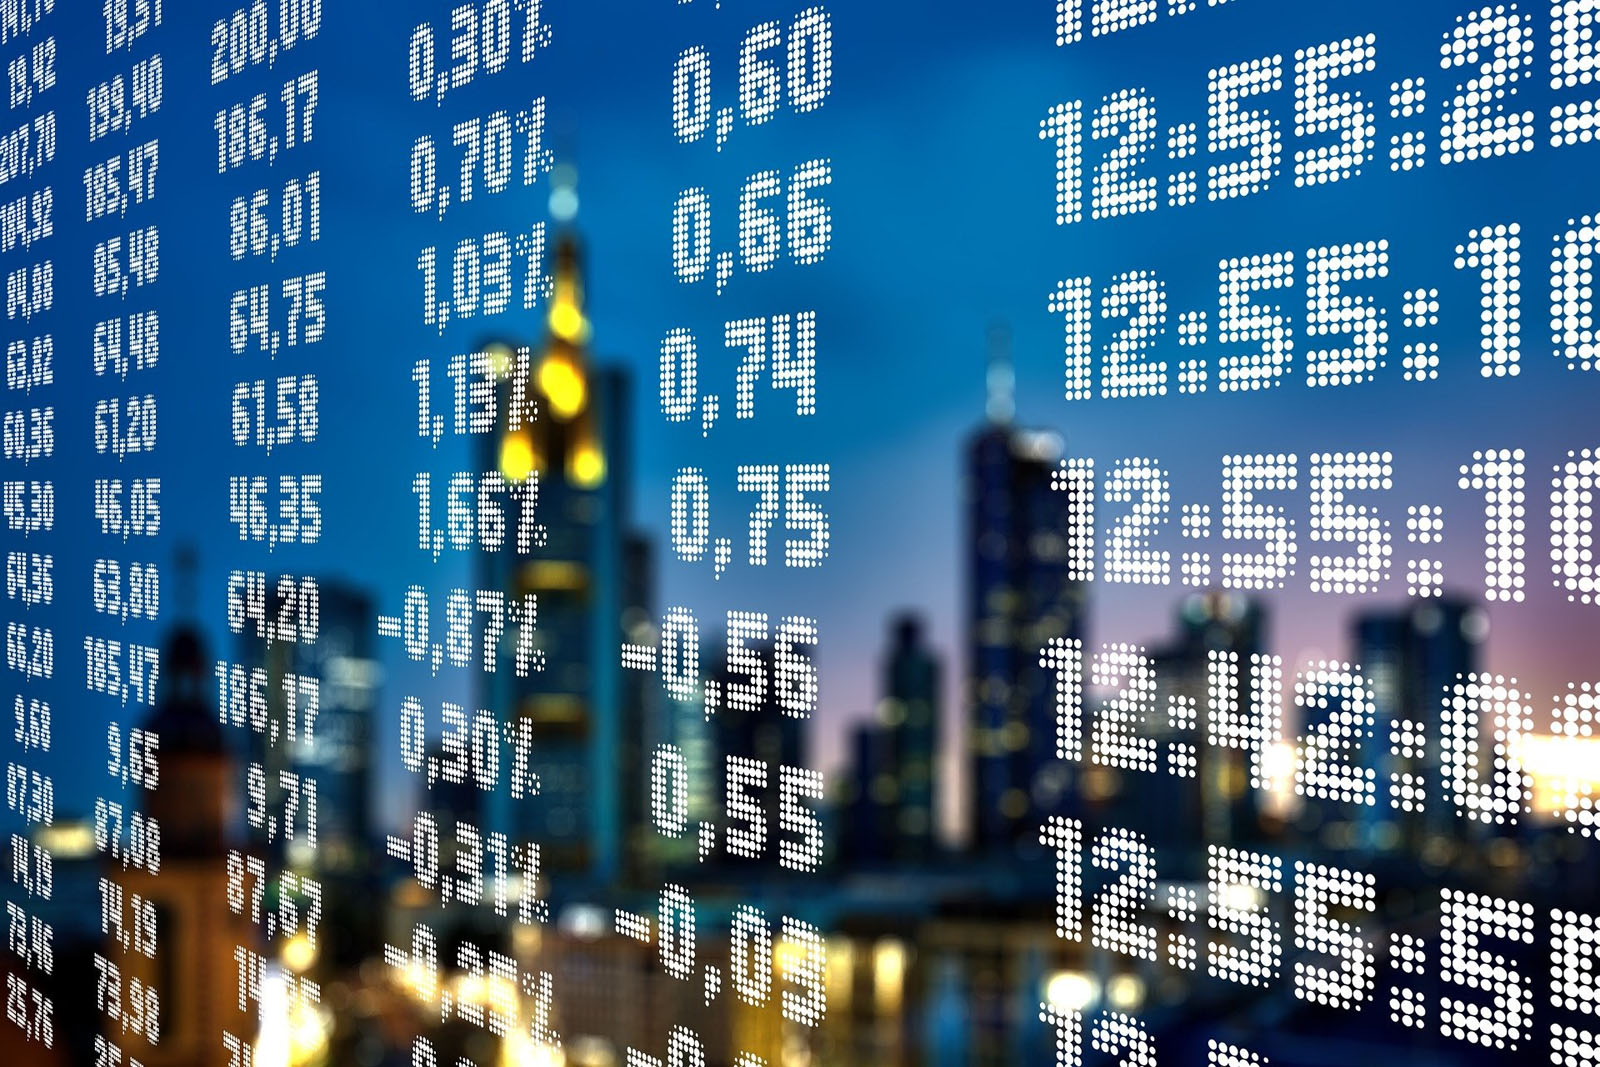 European Stocks Decline for Second Day With Virus Cases Rising Image